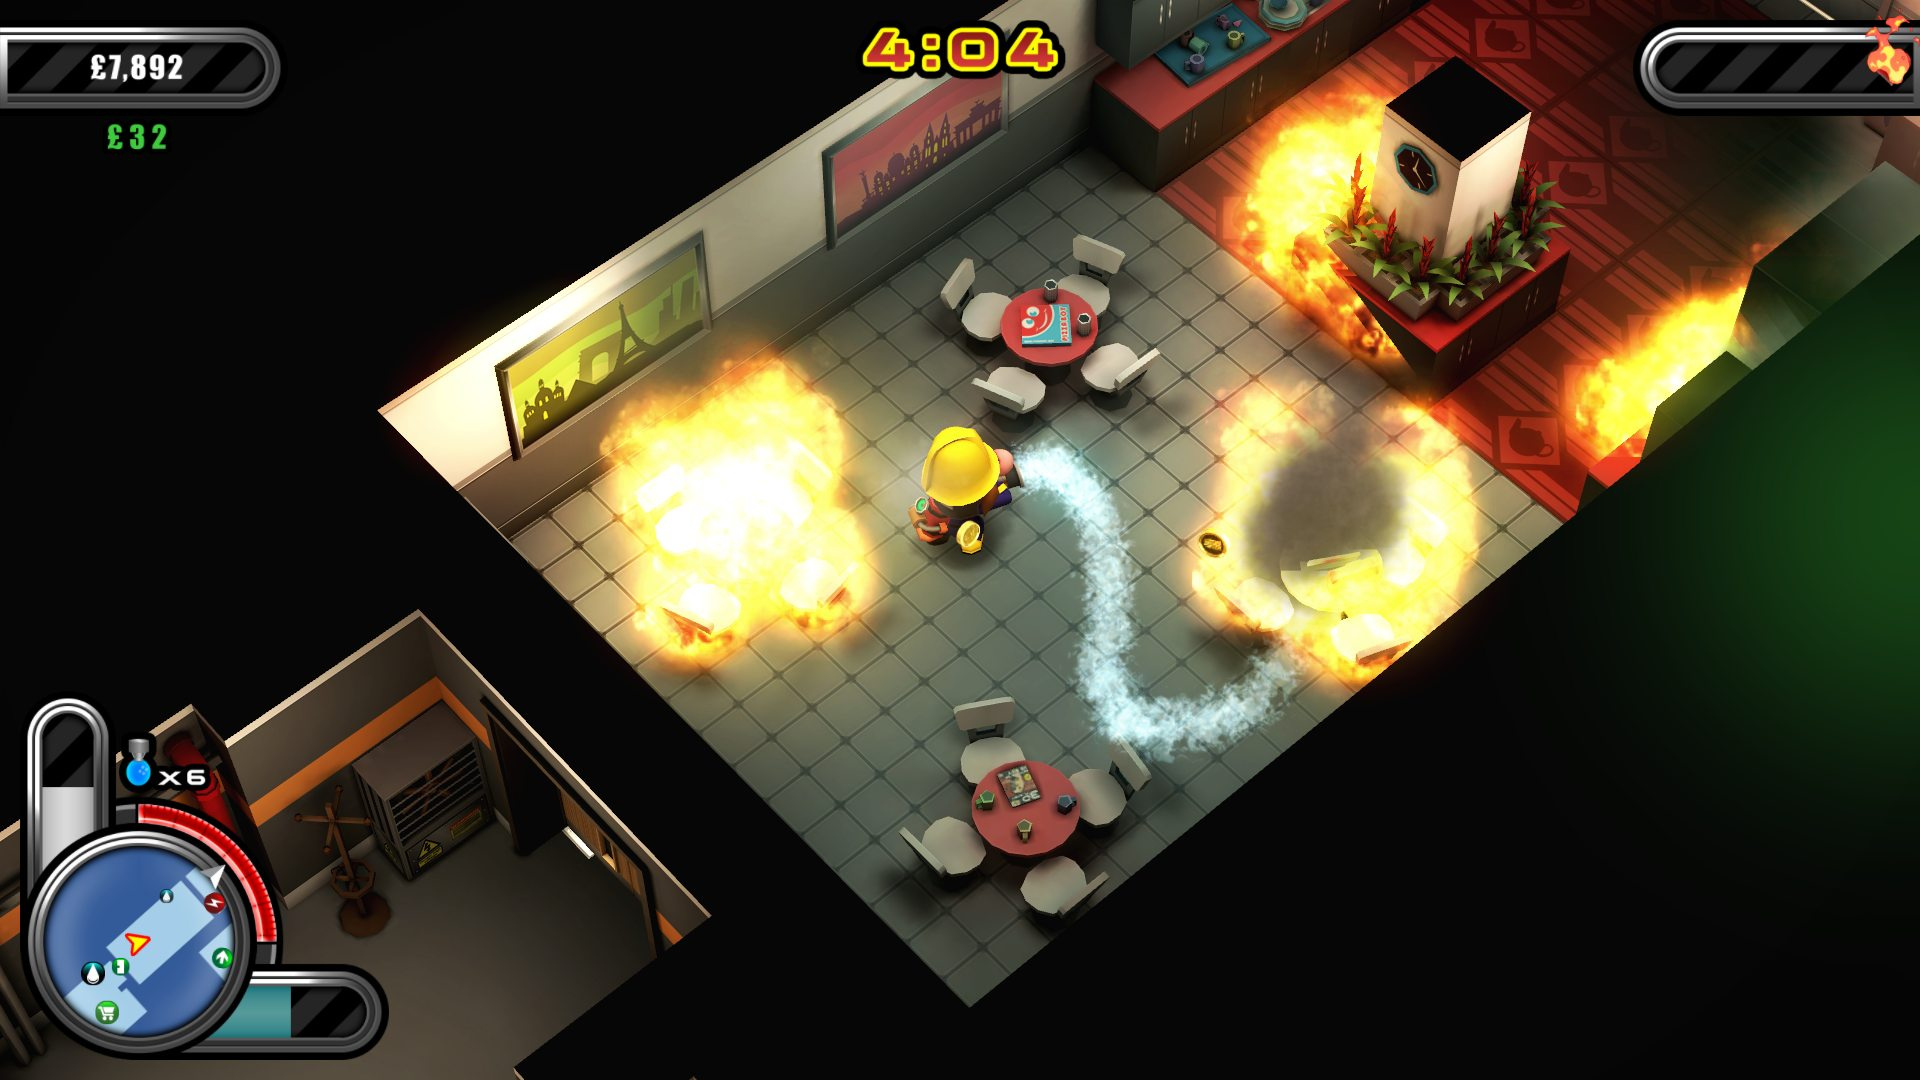 Sony Ps Vita Games Screenshots : Flame over review ps push square